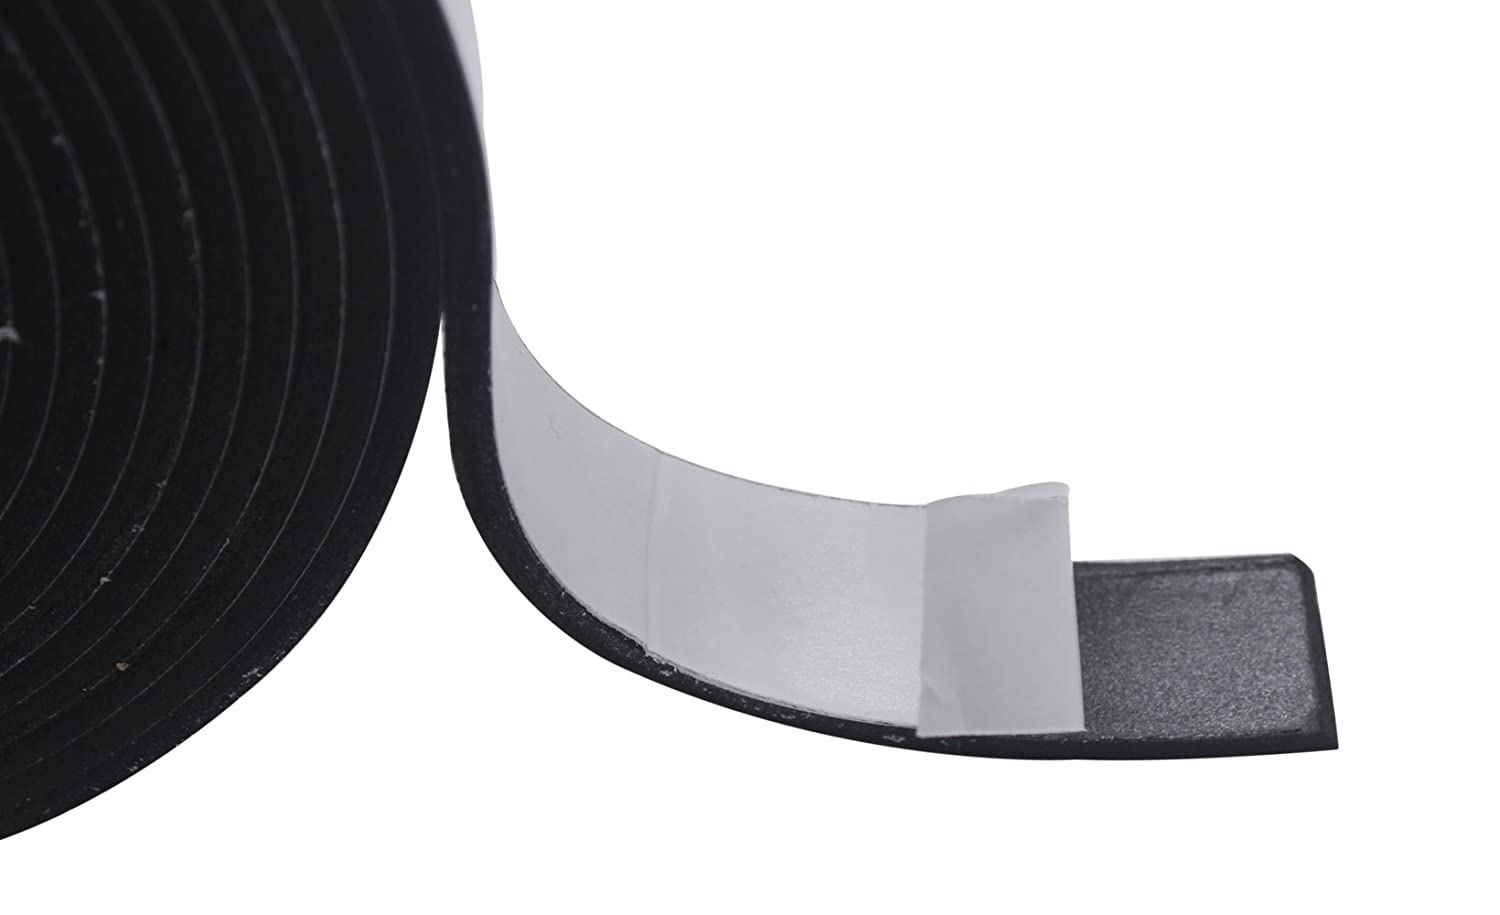 Foam Seal Strip Double-Sided Adhesive Weather Strip Foam Tape High Density Foam Tape 1//4Inch Wide X 1//8Inch Thick , White 65.6 Feet Length